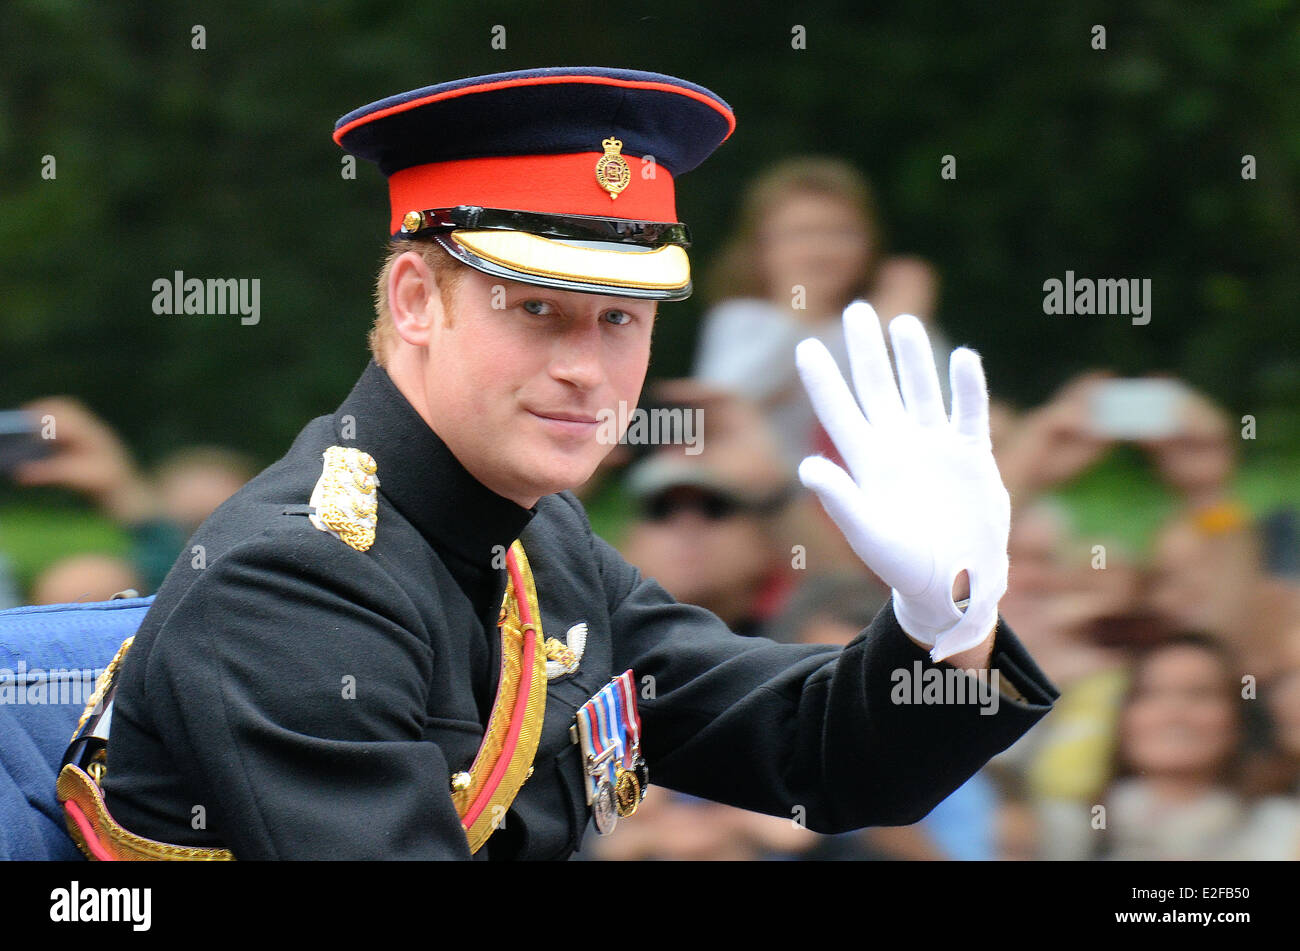 prince-harry-captain-harry-wales-in-his-military-role-during-trooping-E2FB50.jpg